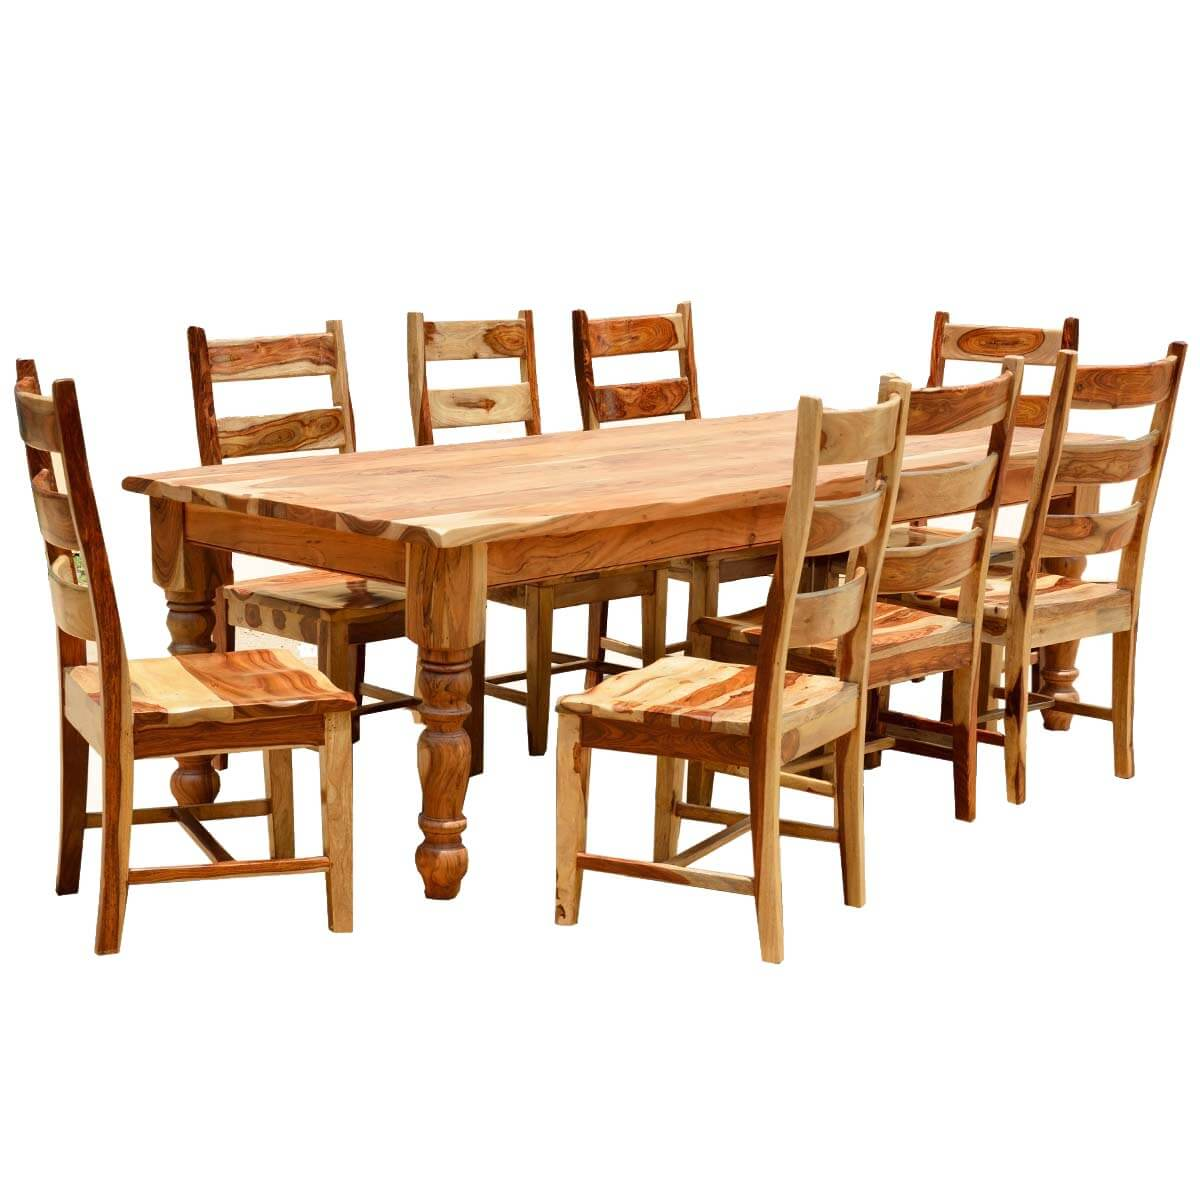 Rustic solid wood farmhouse dining room table chair set for Rustic dining room sets